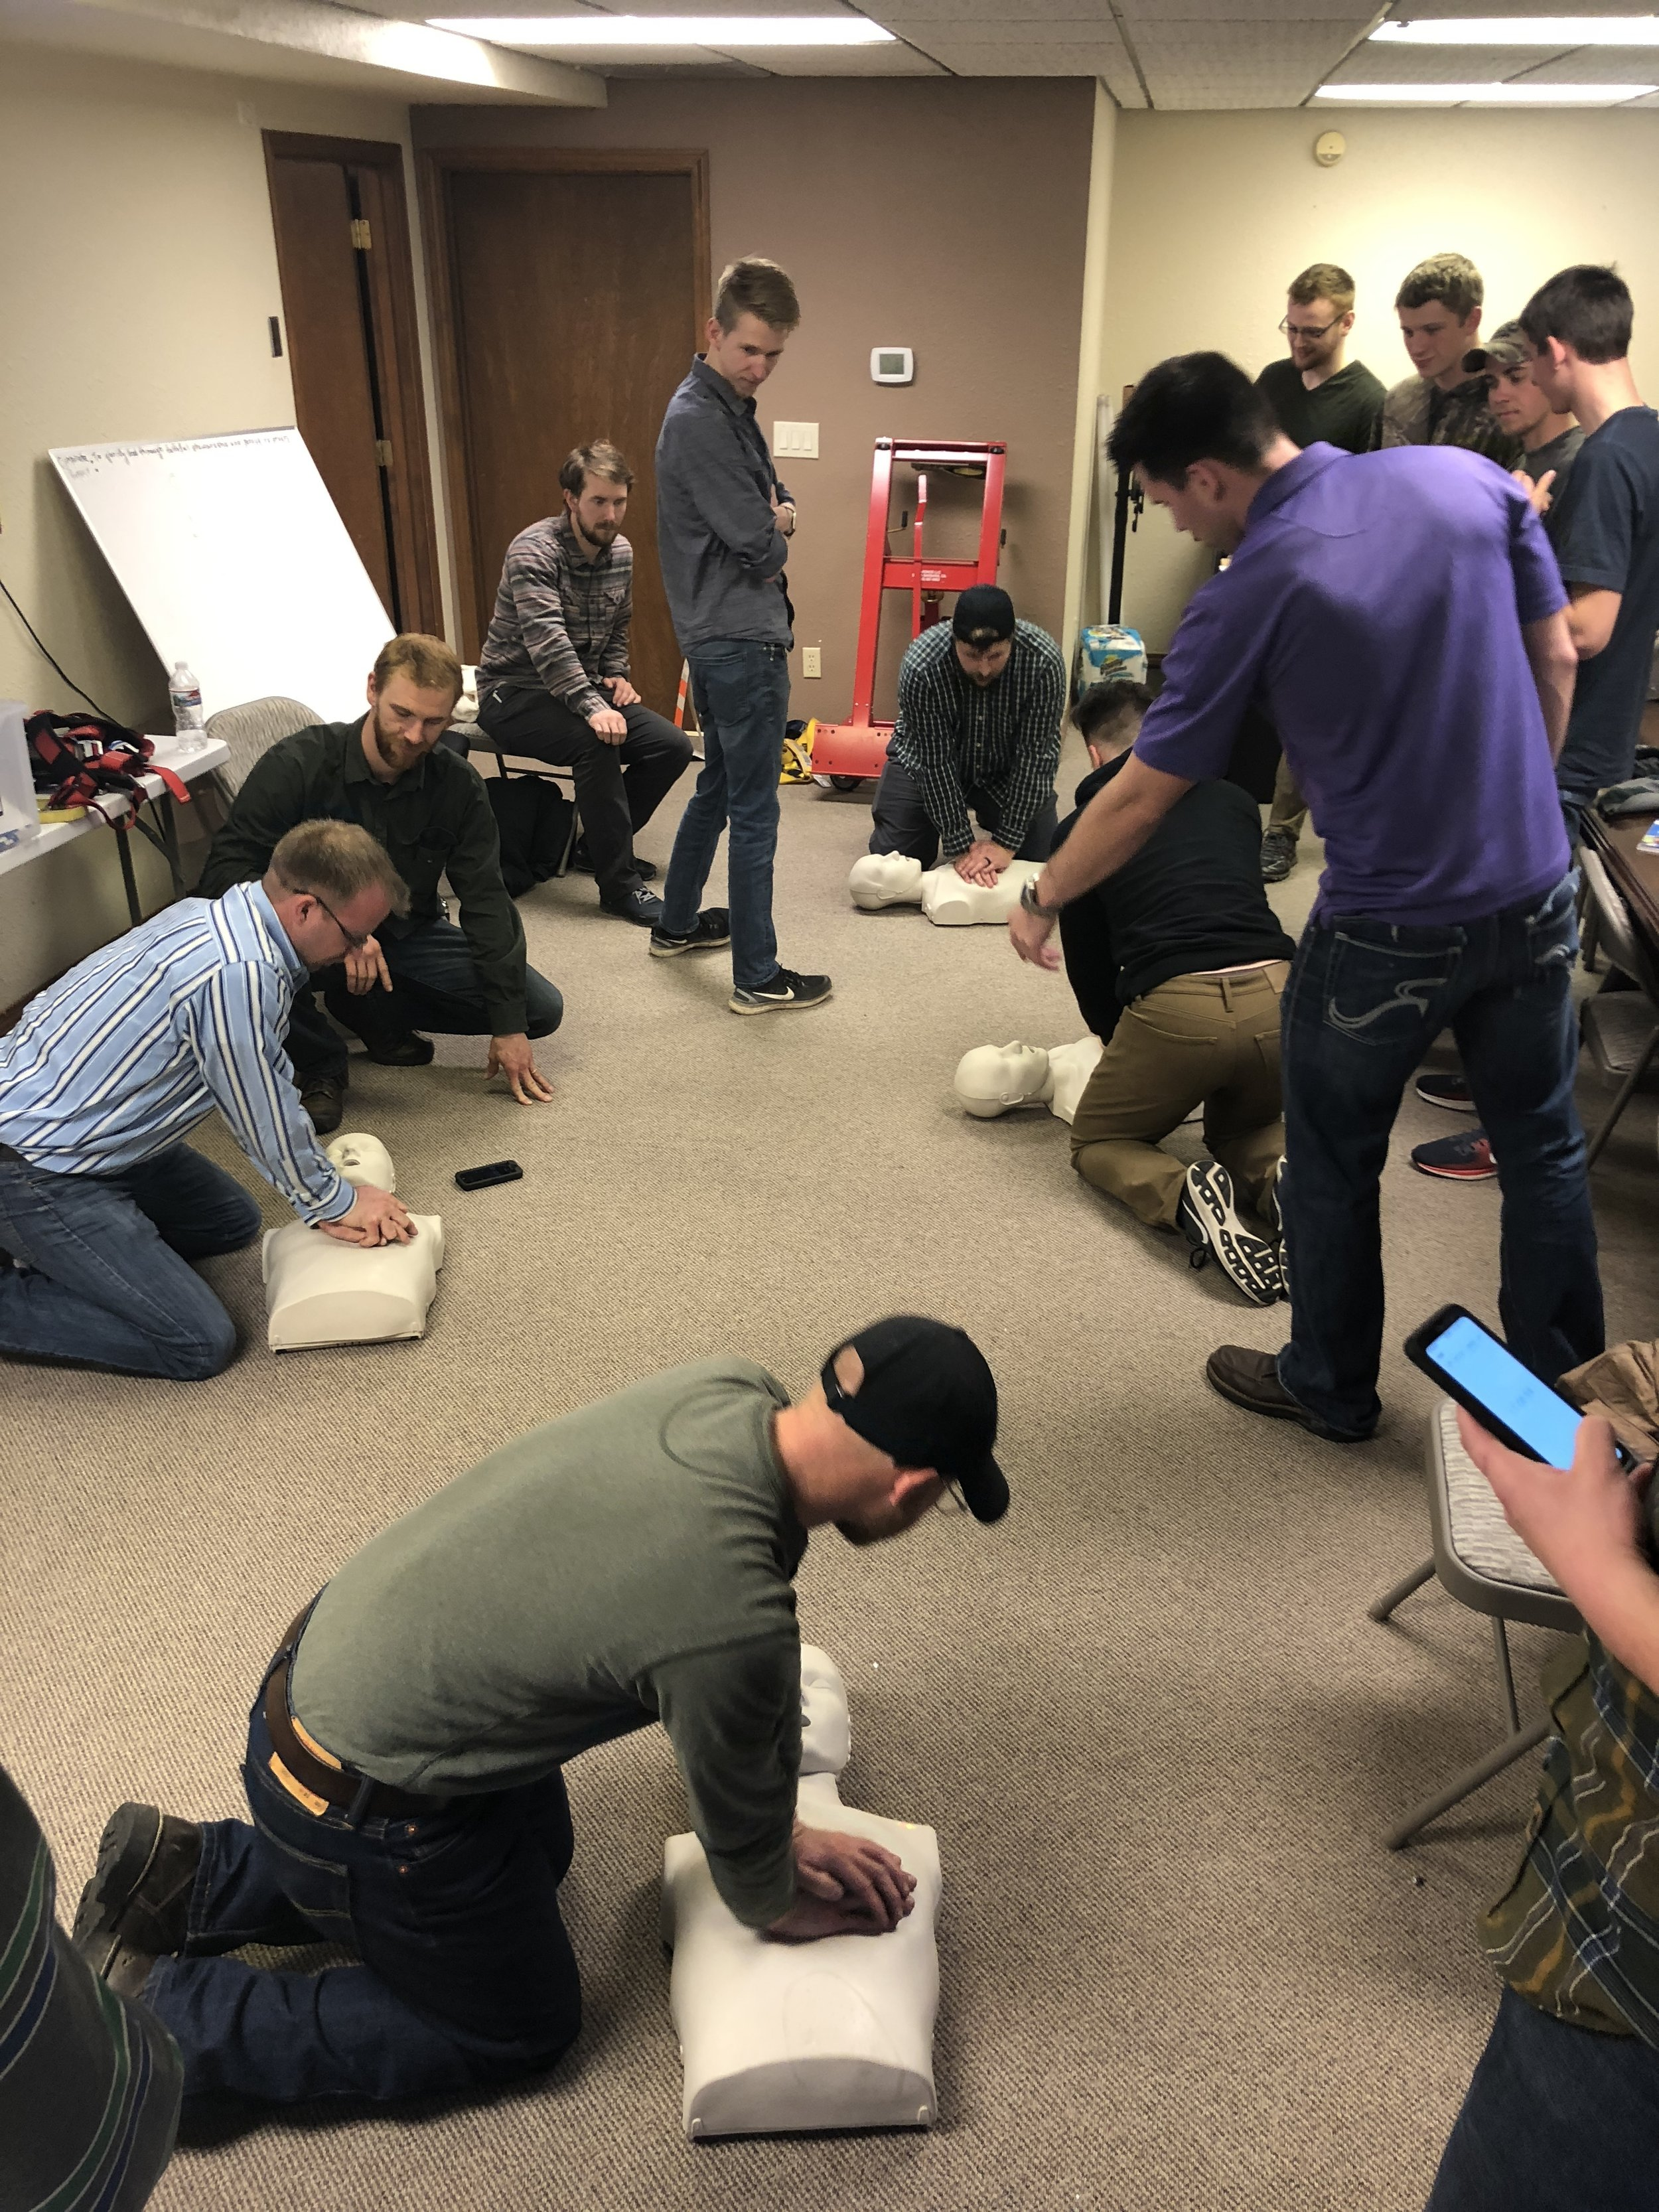 Our Technicians are First Aid and CPR certified.